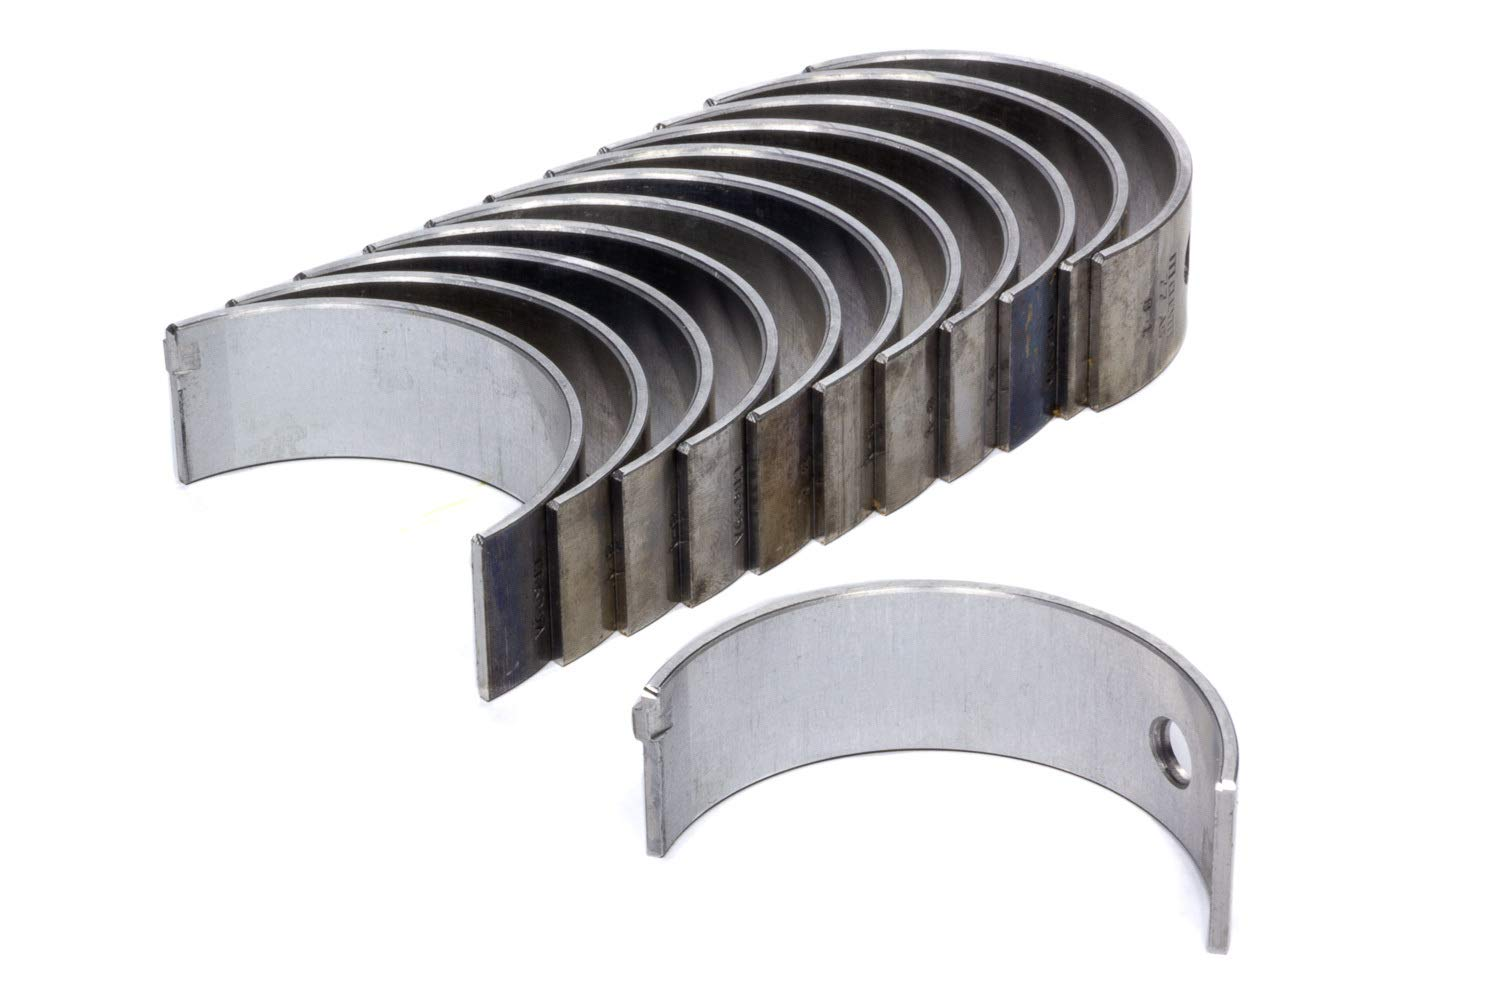 6 Clevite CB-699A 6 Pack Rod Bearing Set